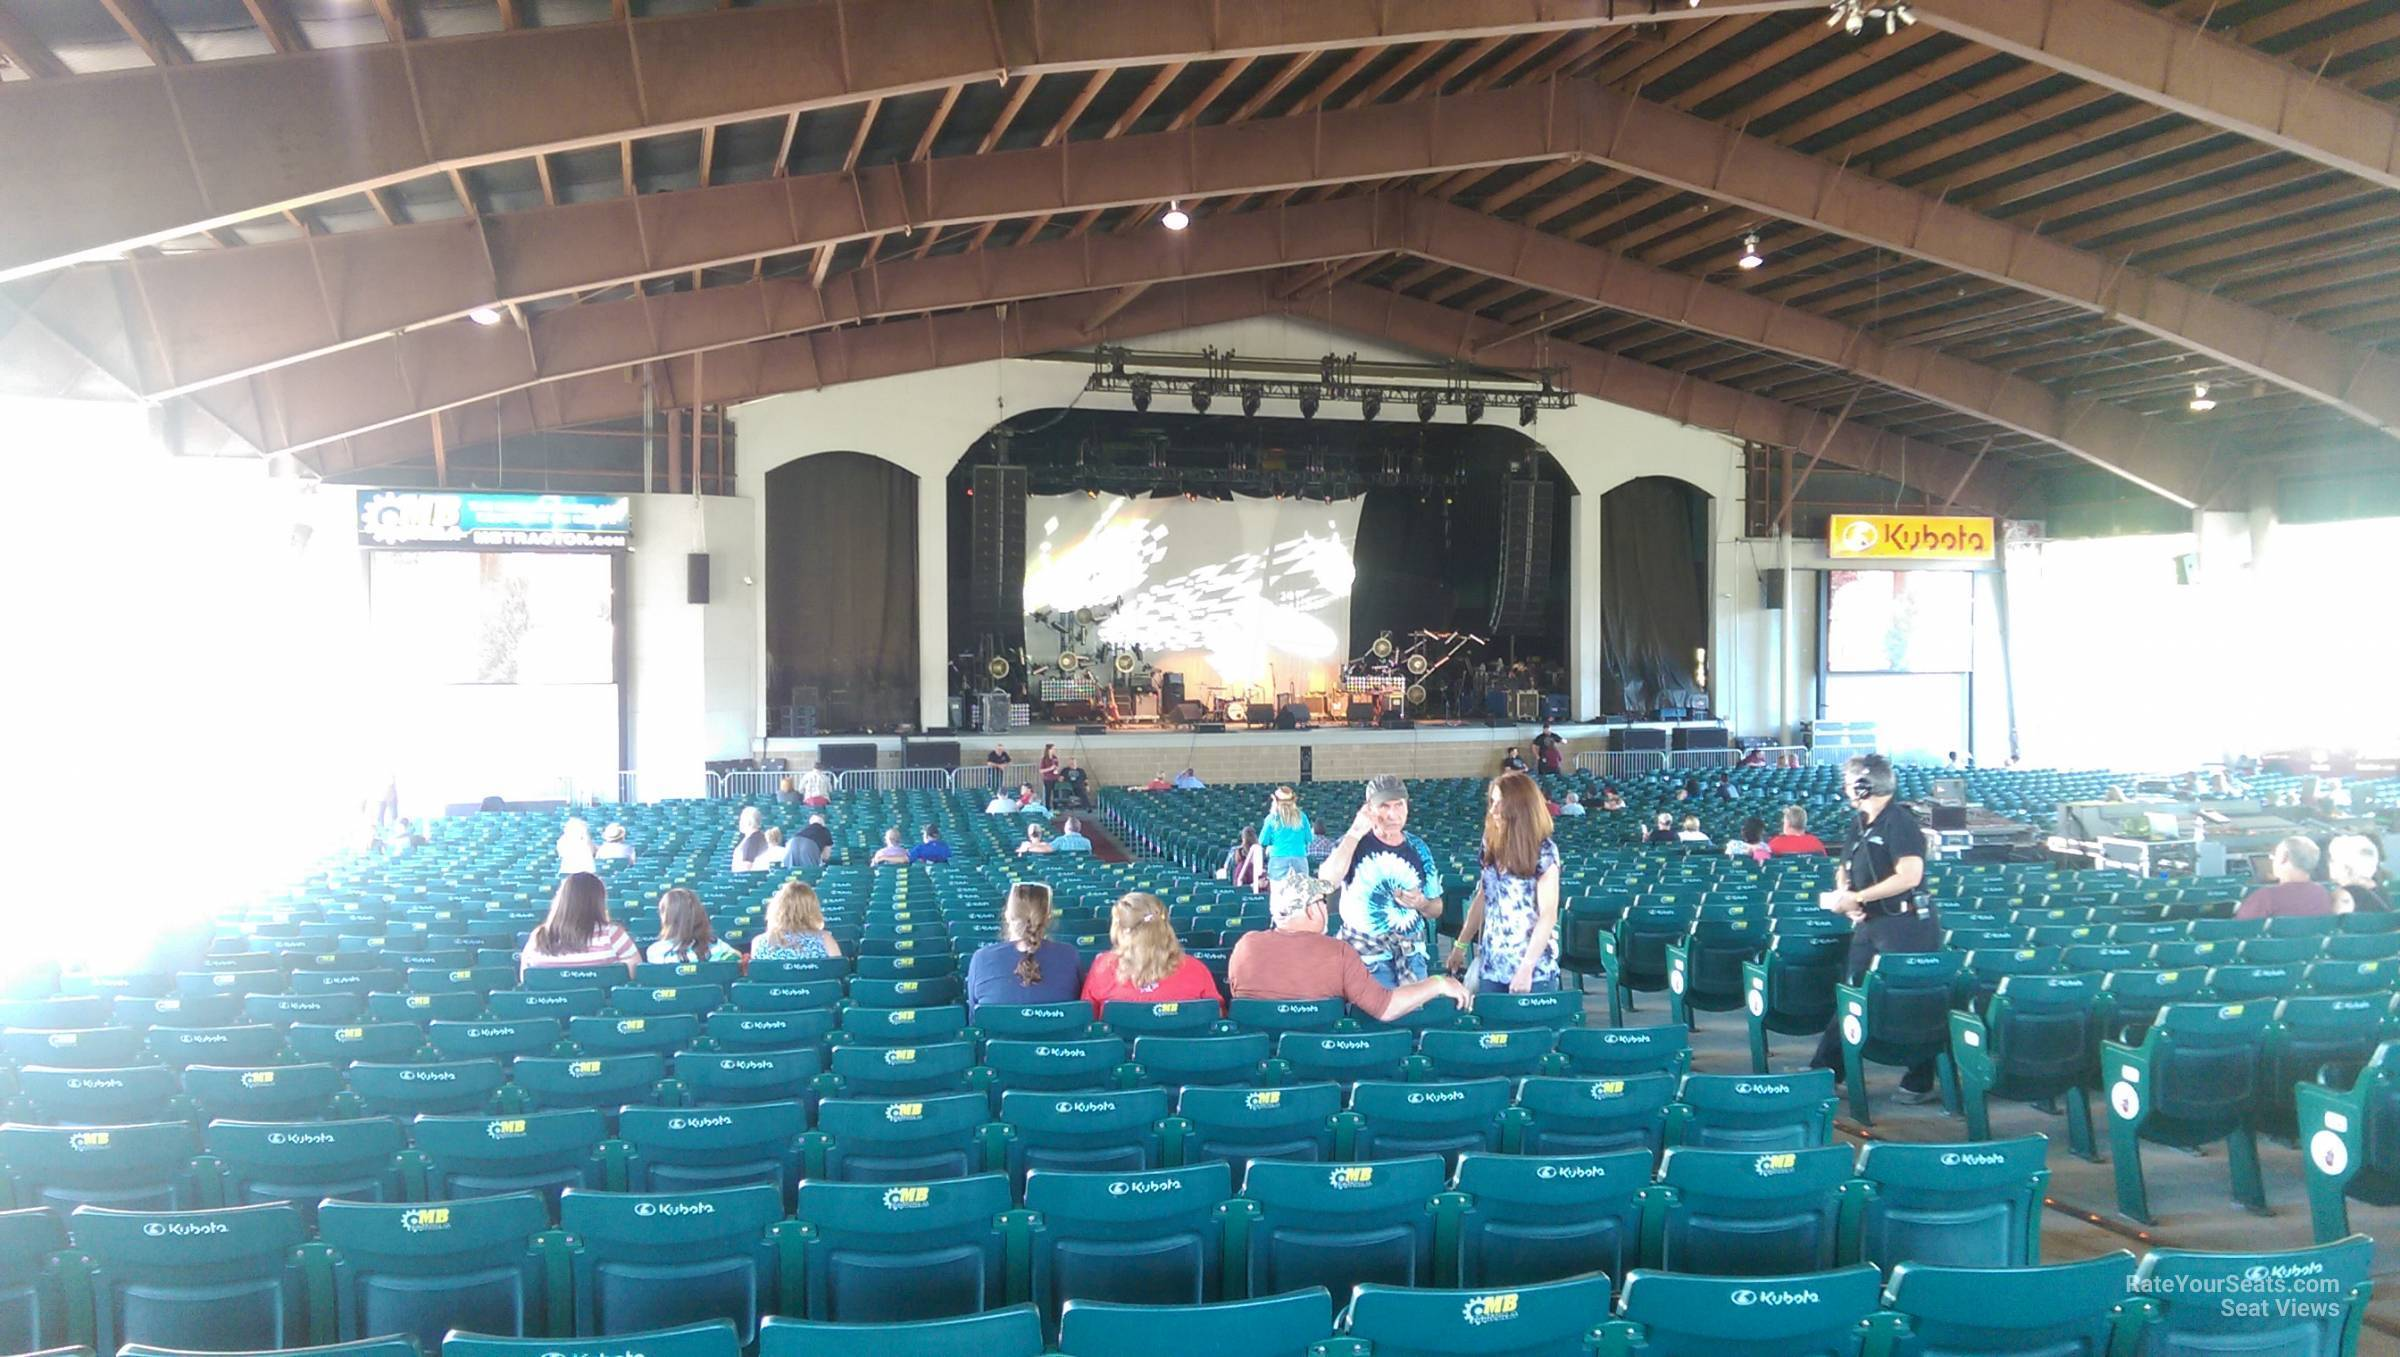 Concert Seat View For Bank Of New Hampshire Pavilion Meadowbrook Section 2a